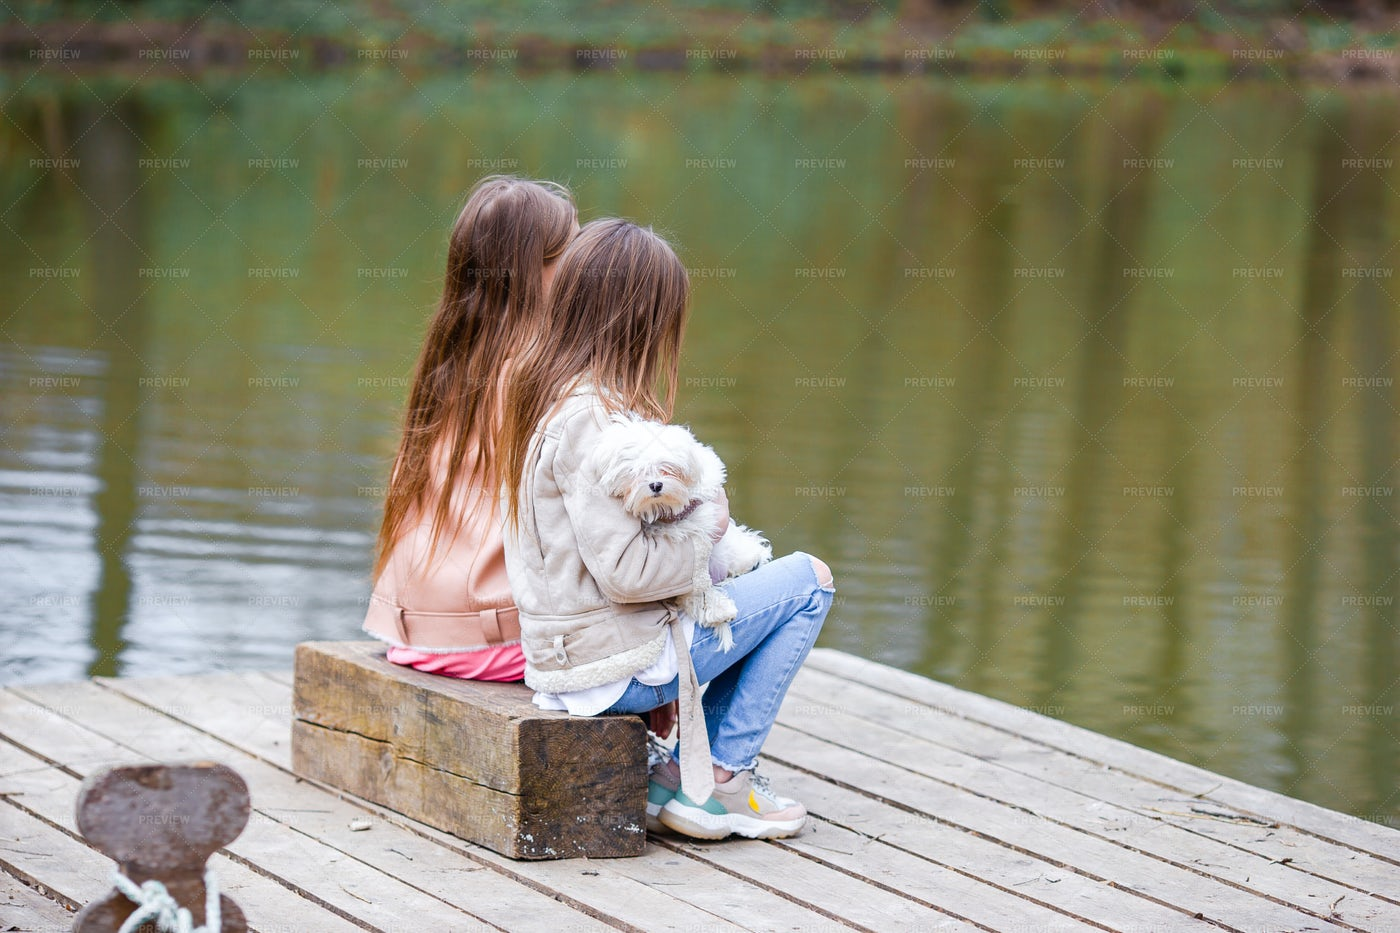 Sitting On A Dock With Puppy: Stock Photos